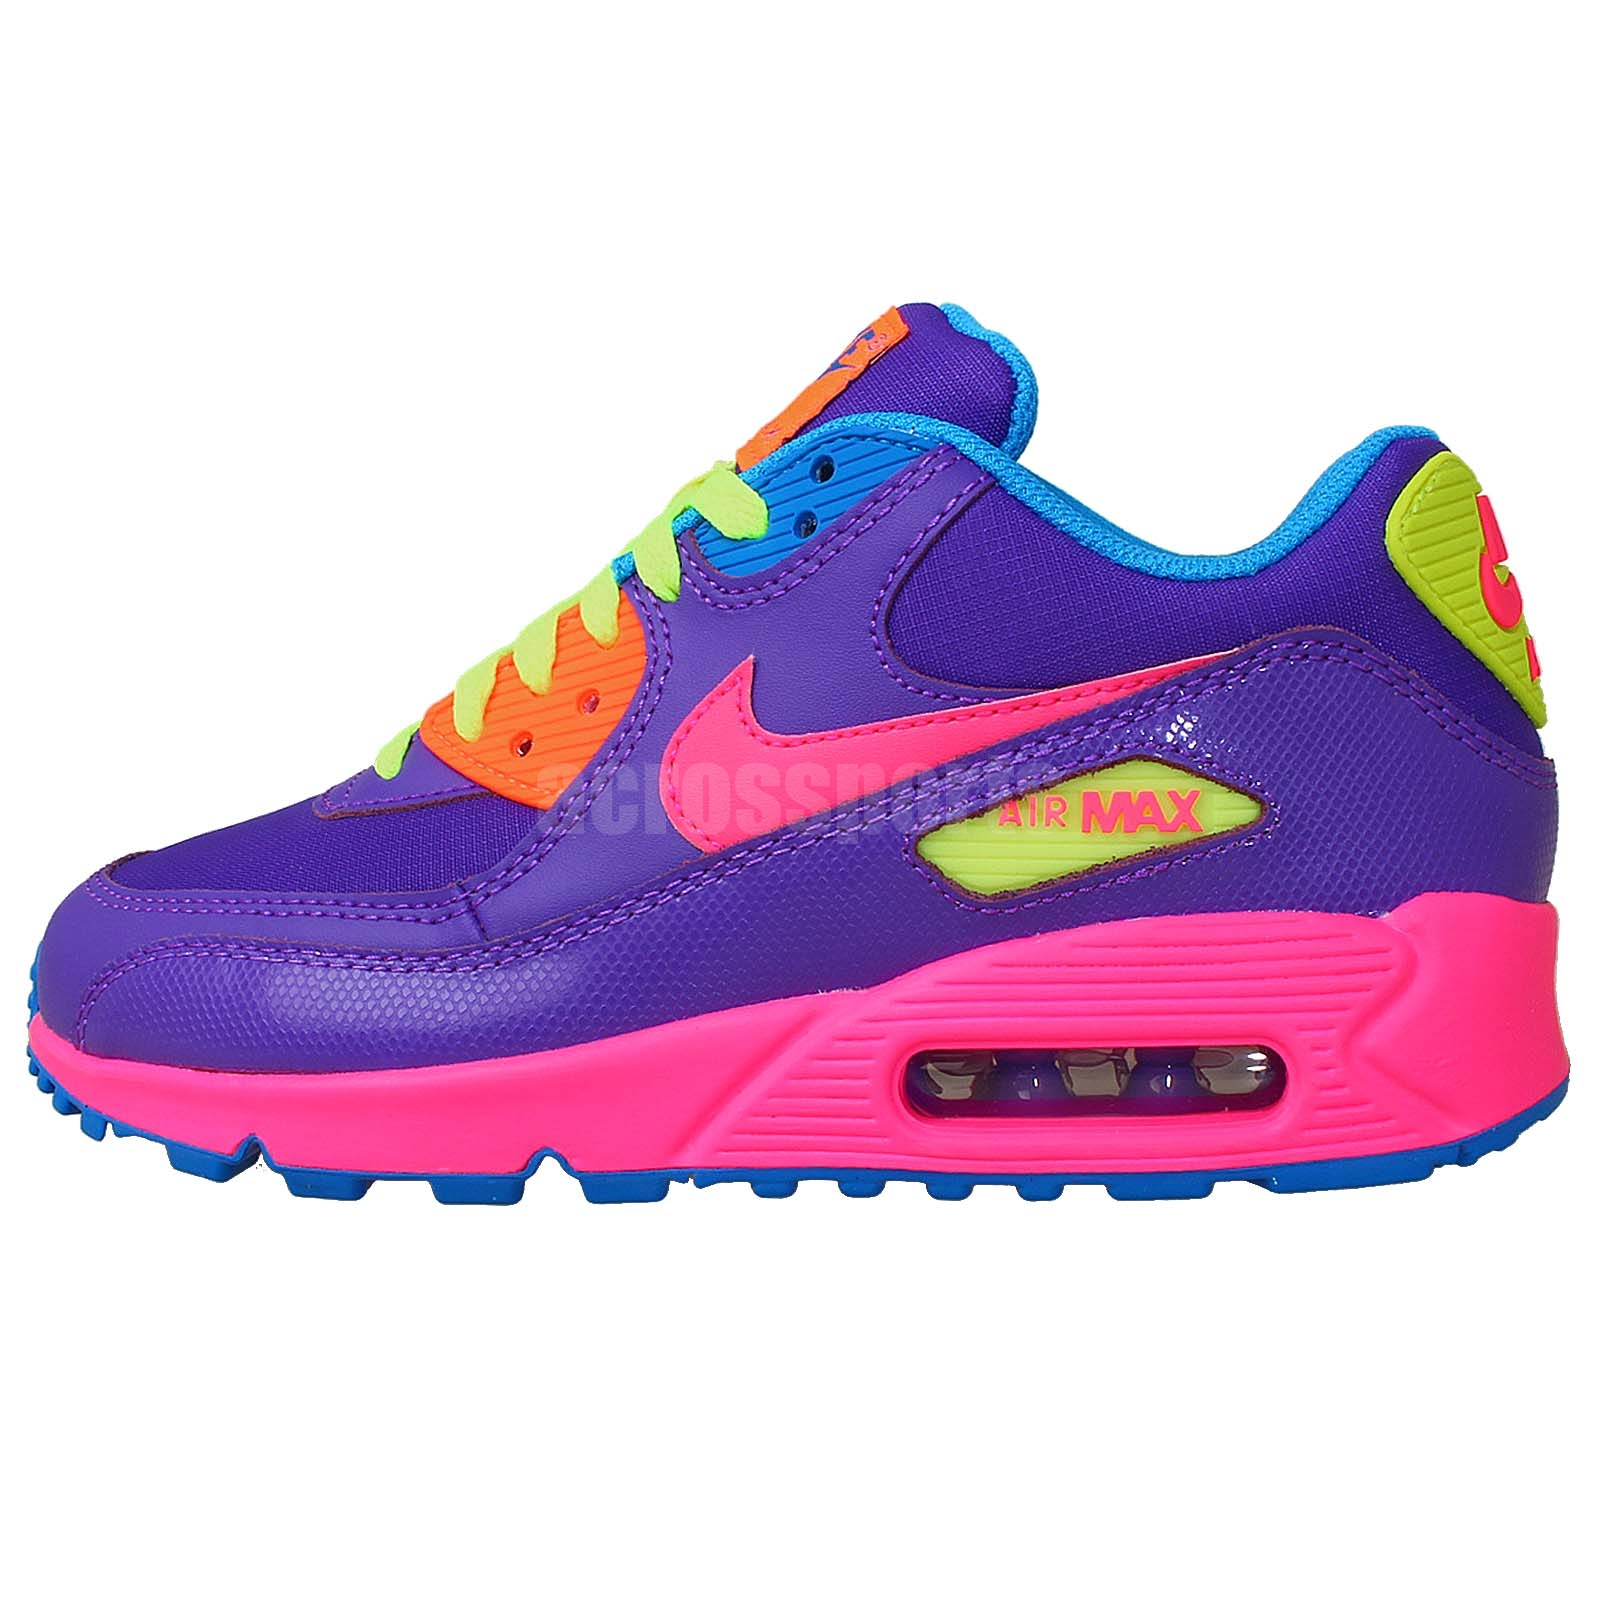 nike air max 90 2007 gs purple pink volt girls youth 2014. Black Bedroom Furniture Sets. Home Design Ideas